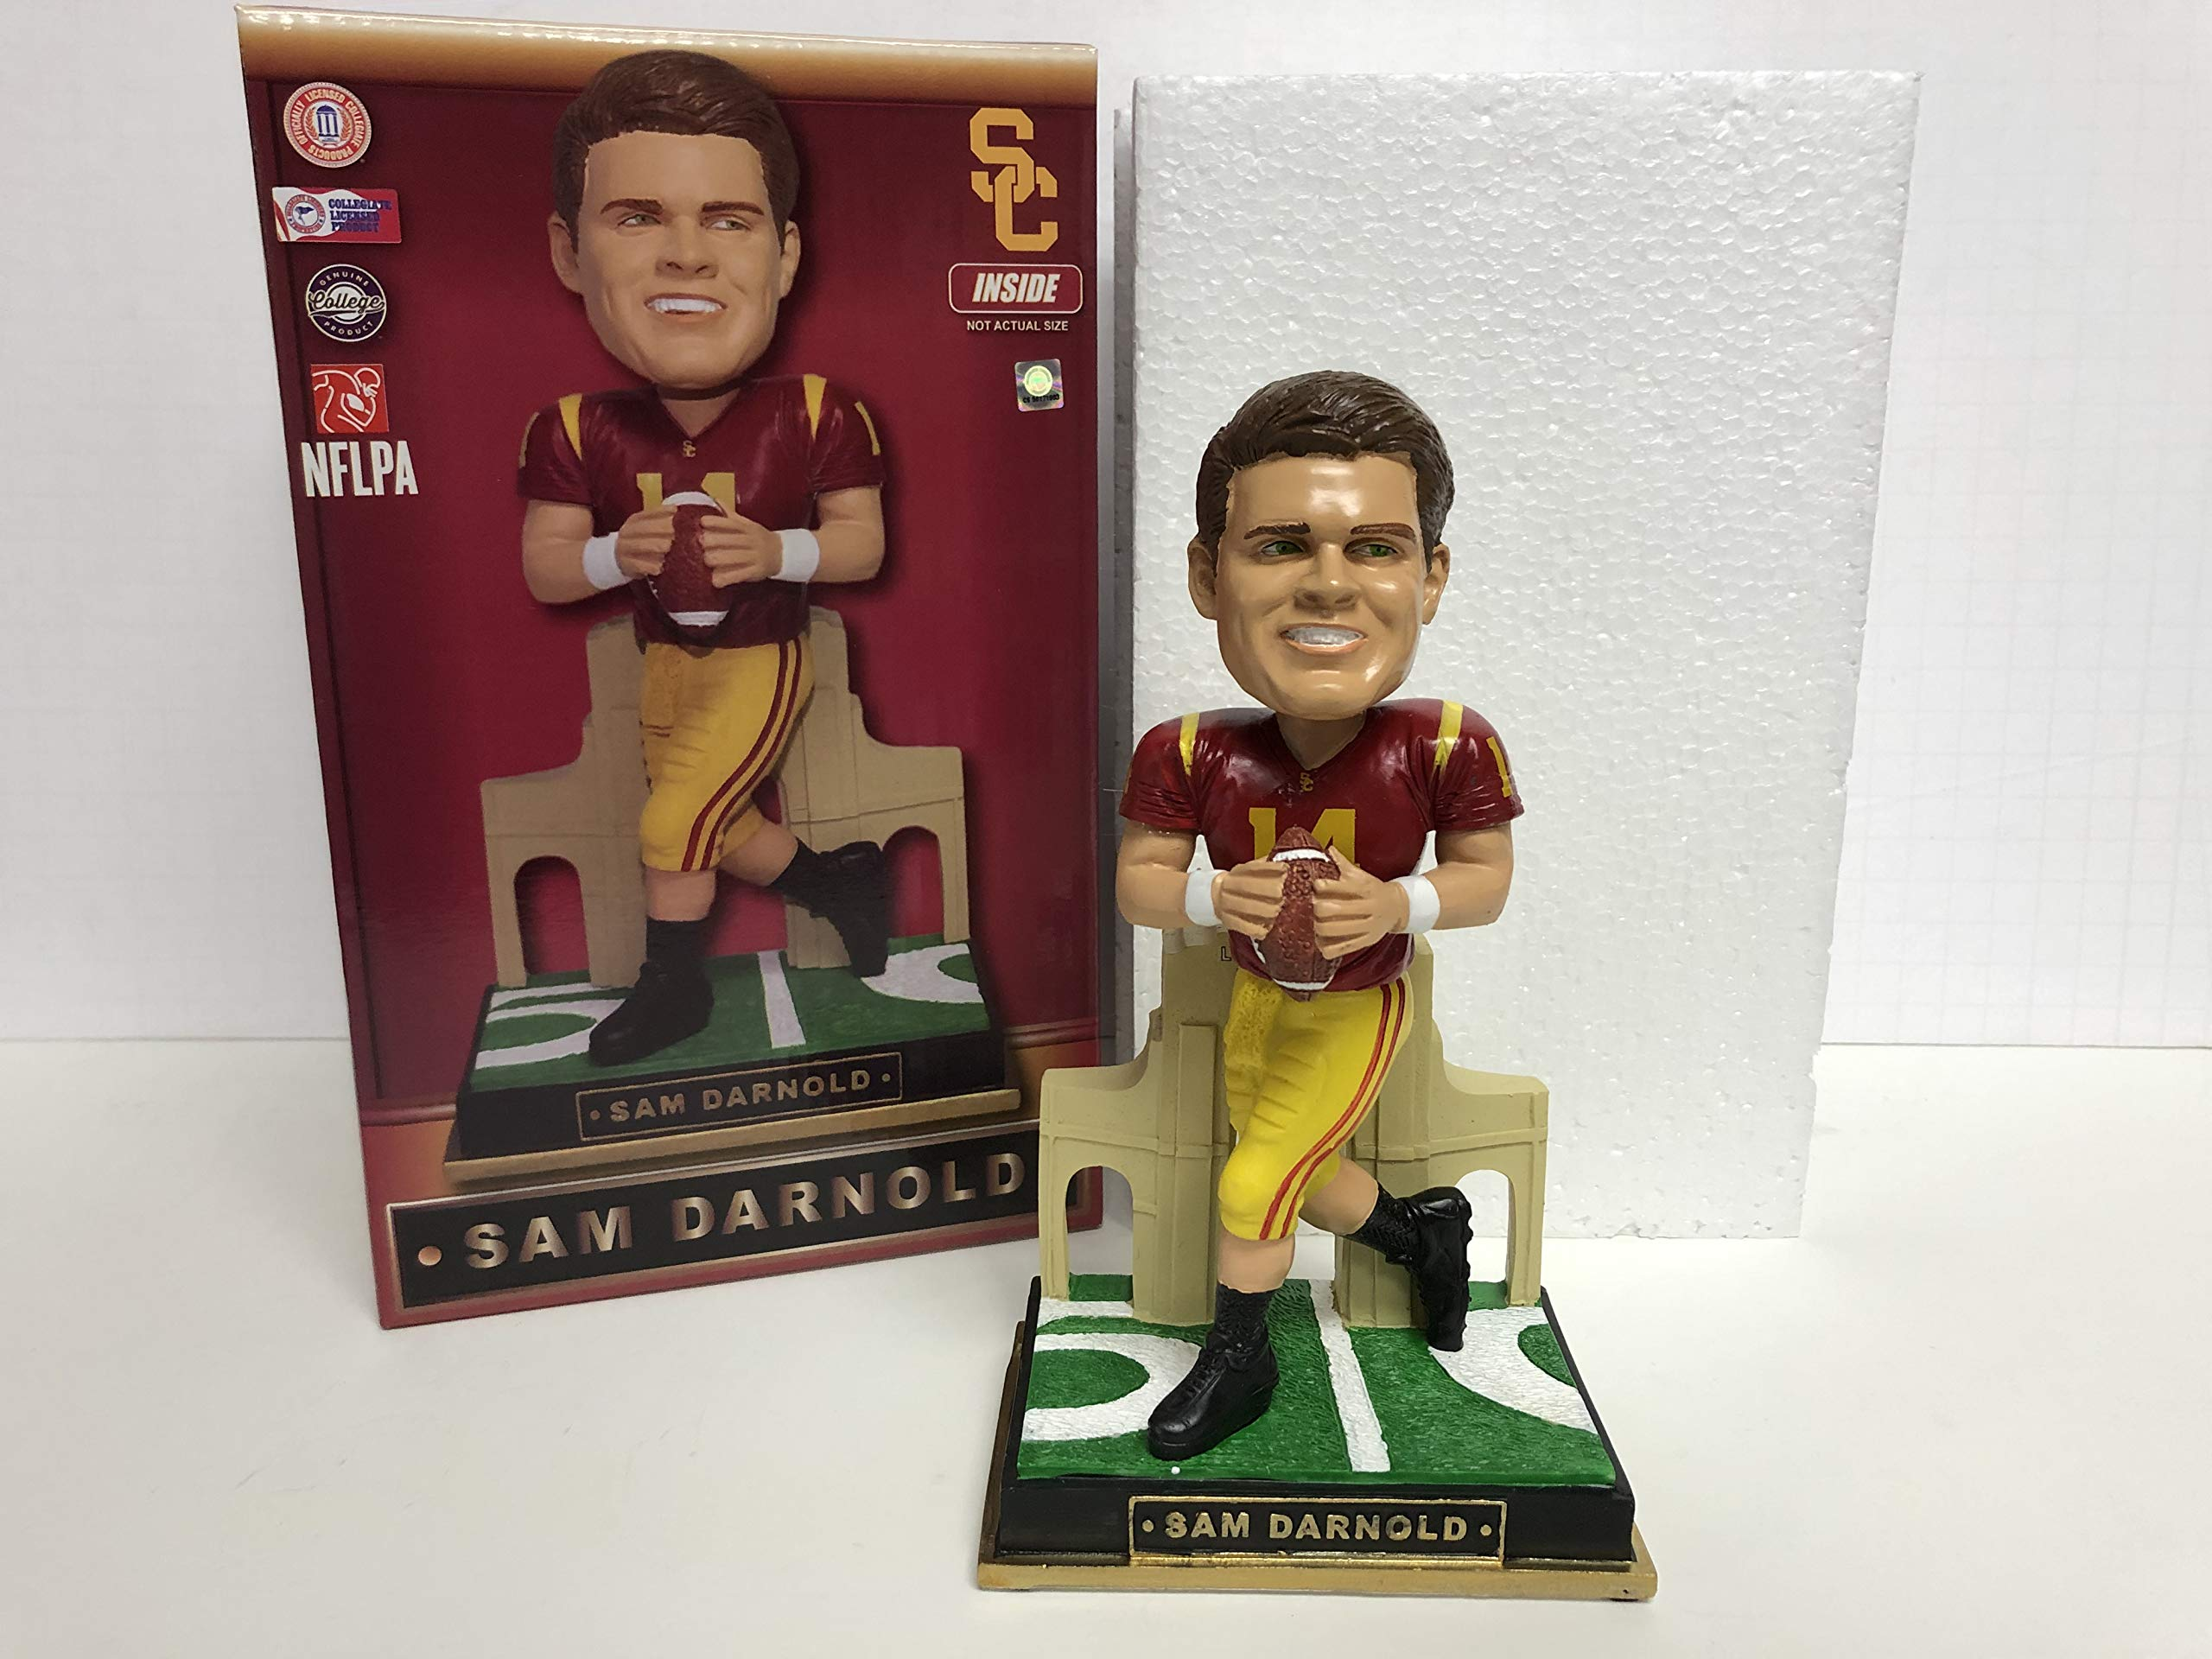 Sam Darnold USC Trojans/current New York Jets Rookie Limited Edition Bobblehead